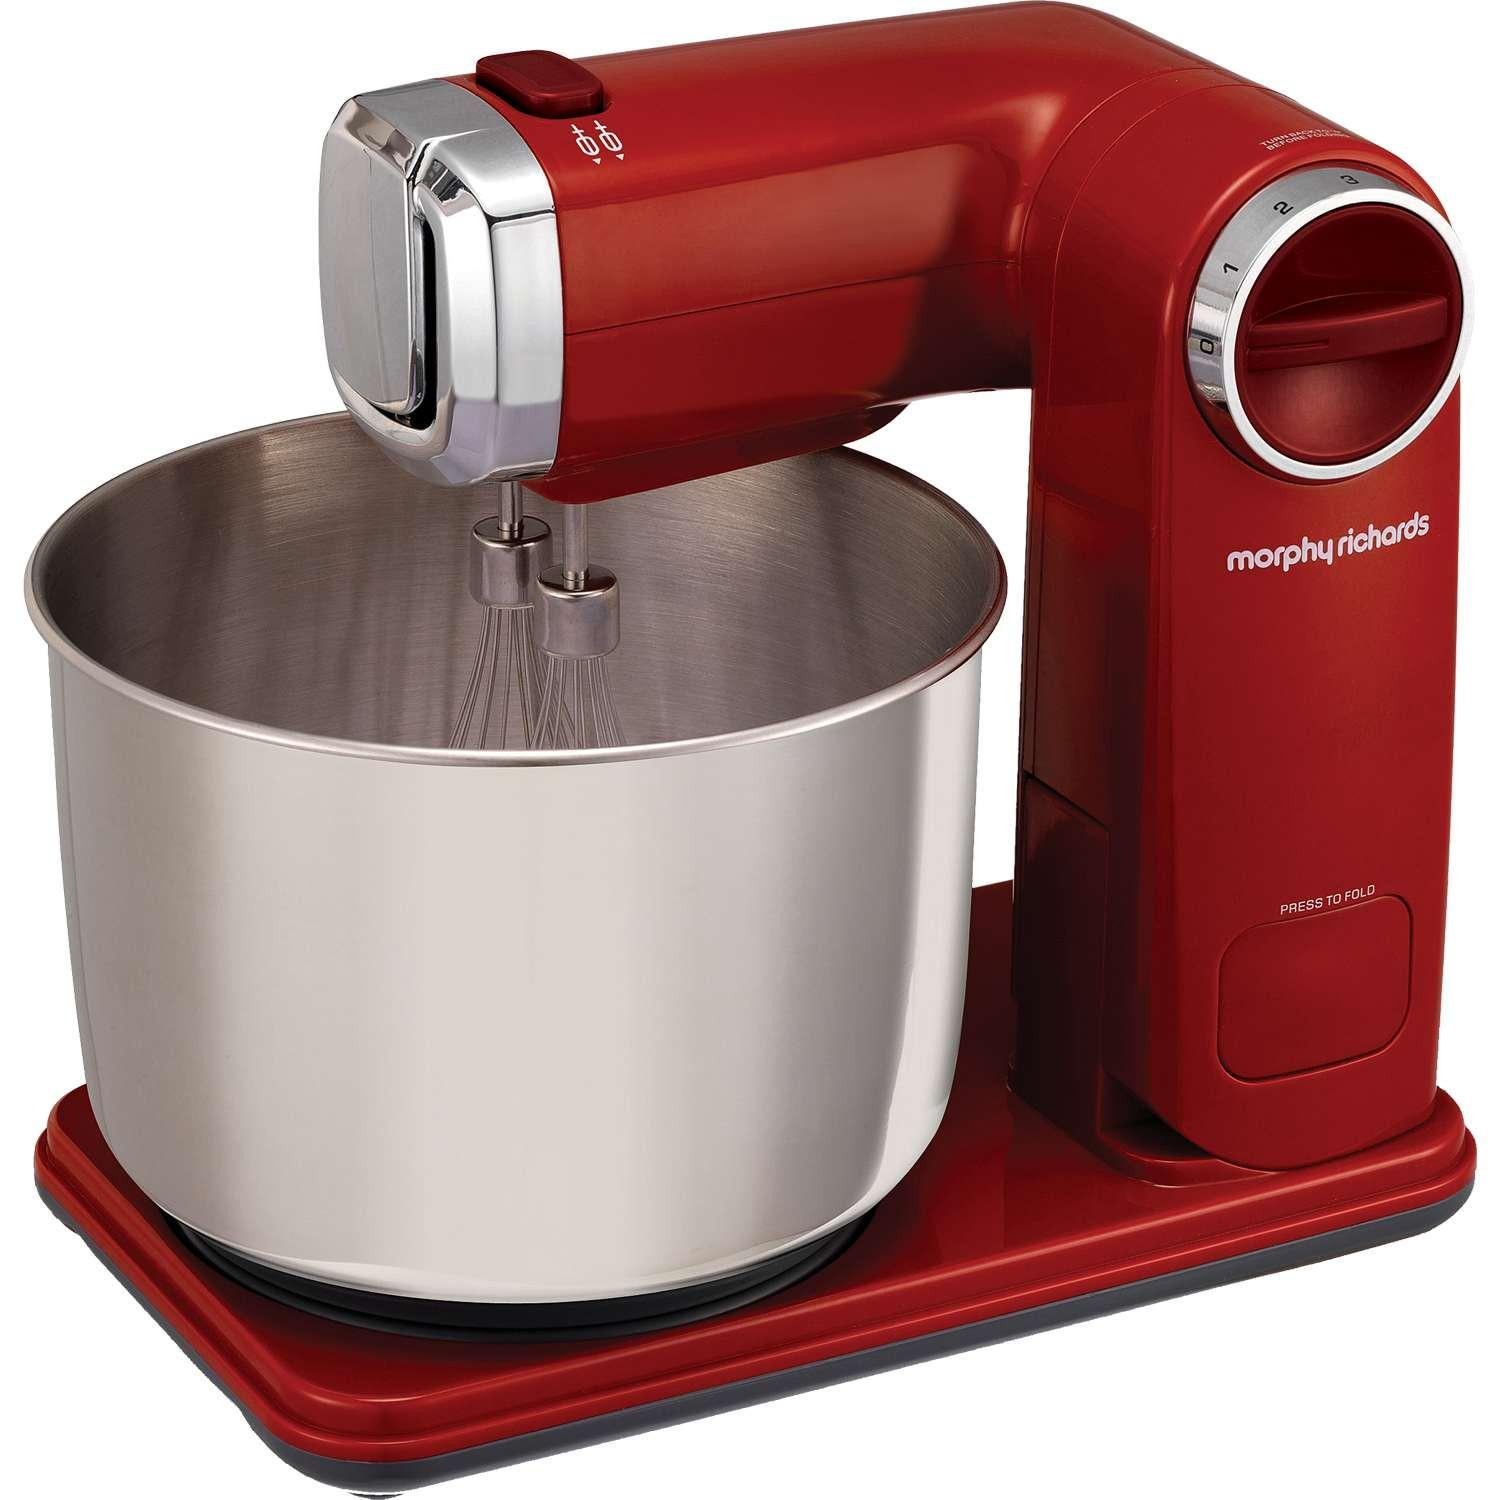 Morphy richards - MR48993 - Mixeur 6 vitesses ultra rapide